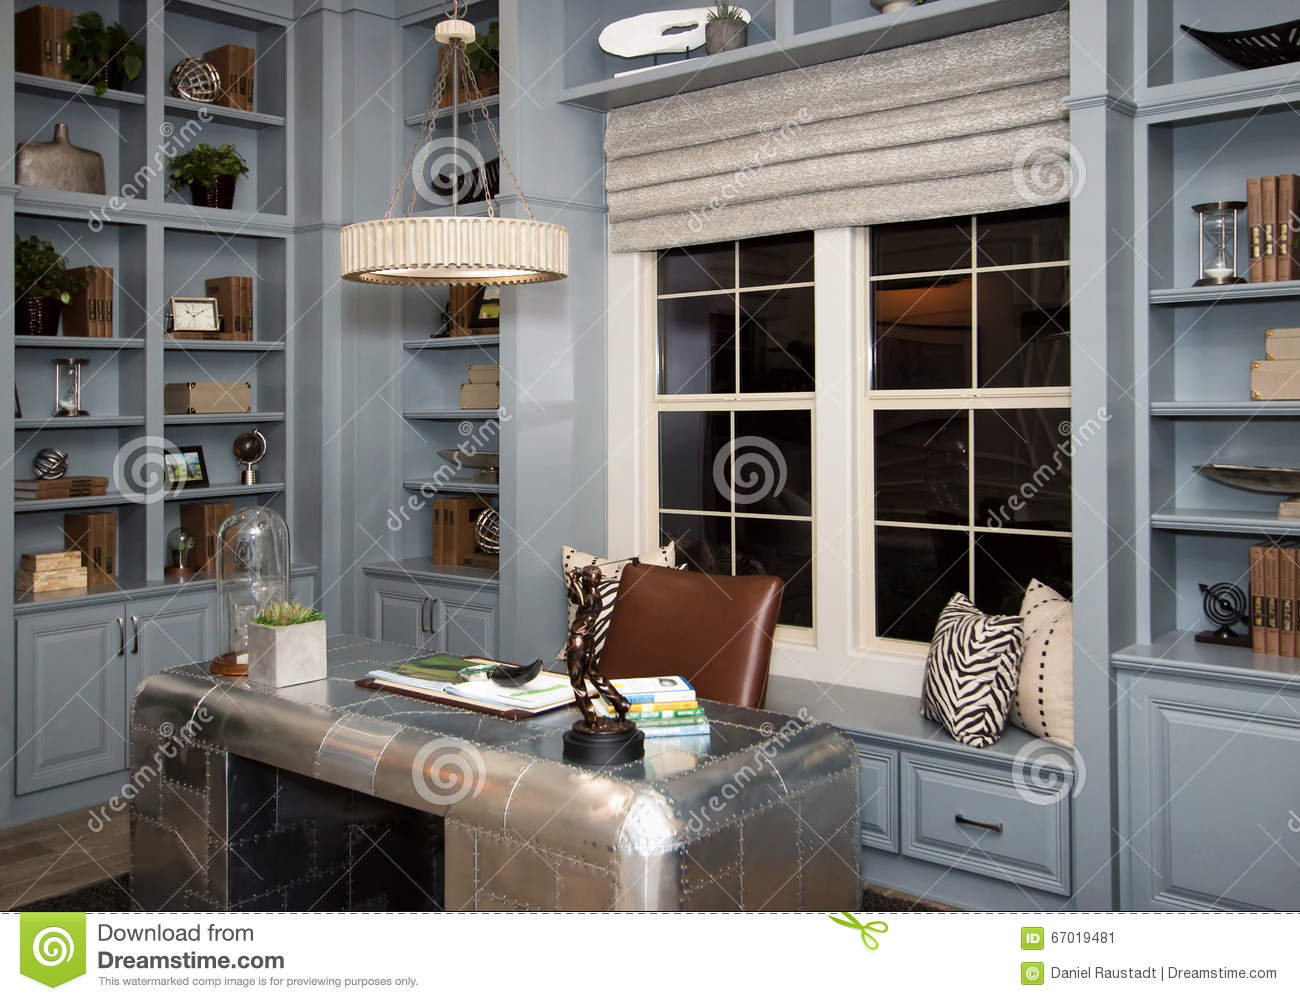 Home Office Cabinets Spacious Home Office Cabinets And Desk Stock Image Image Of